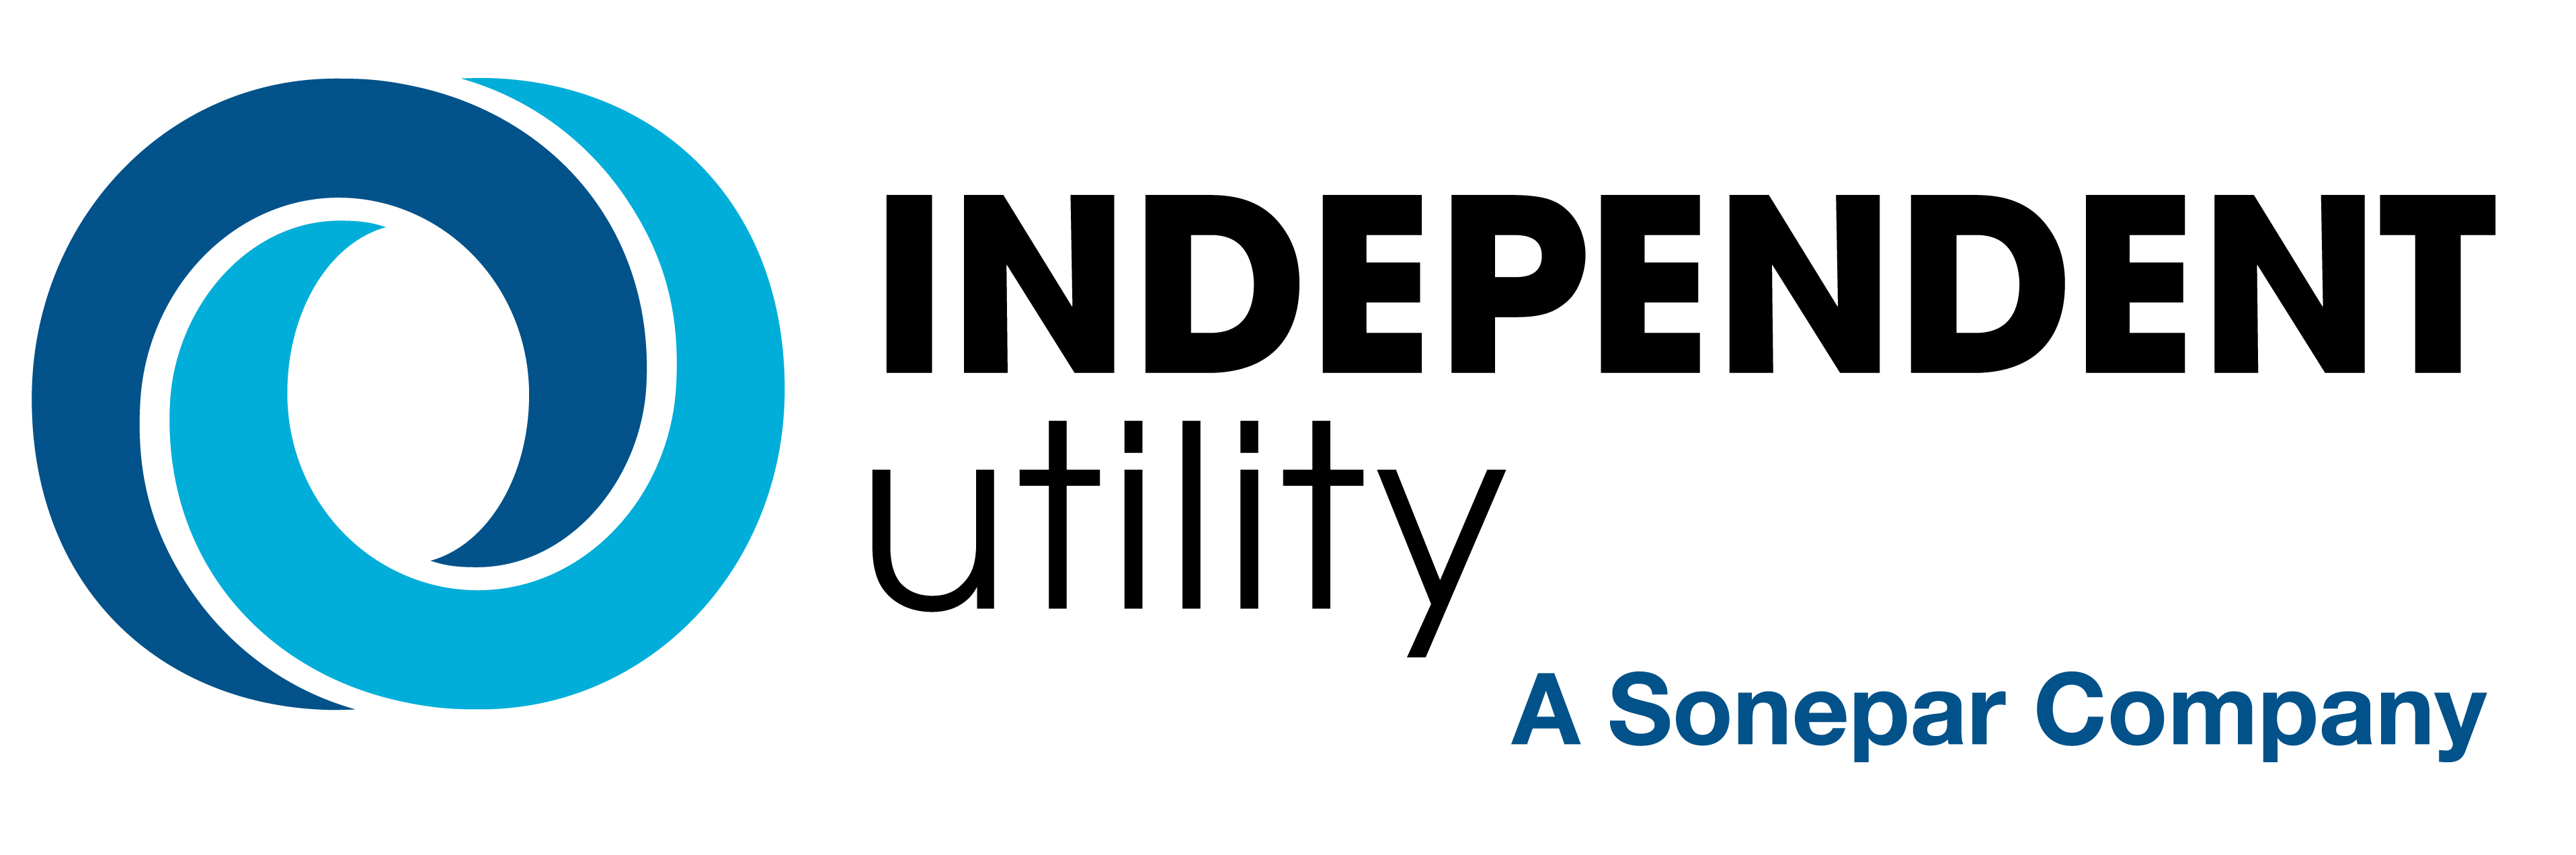 Independent Utility